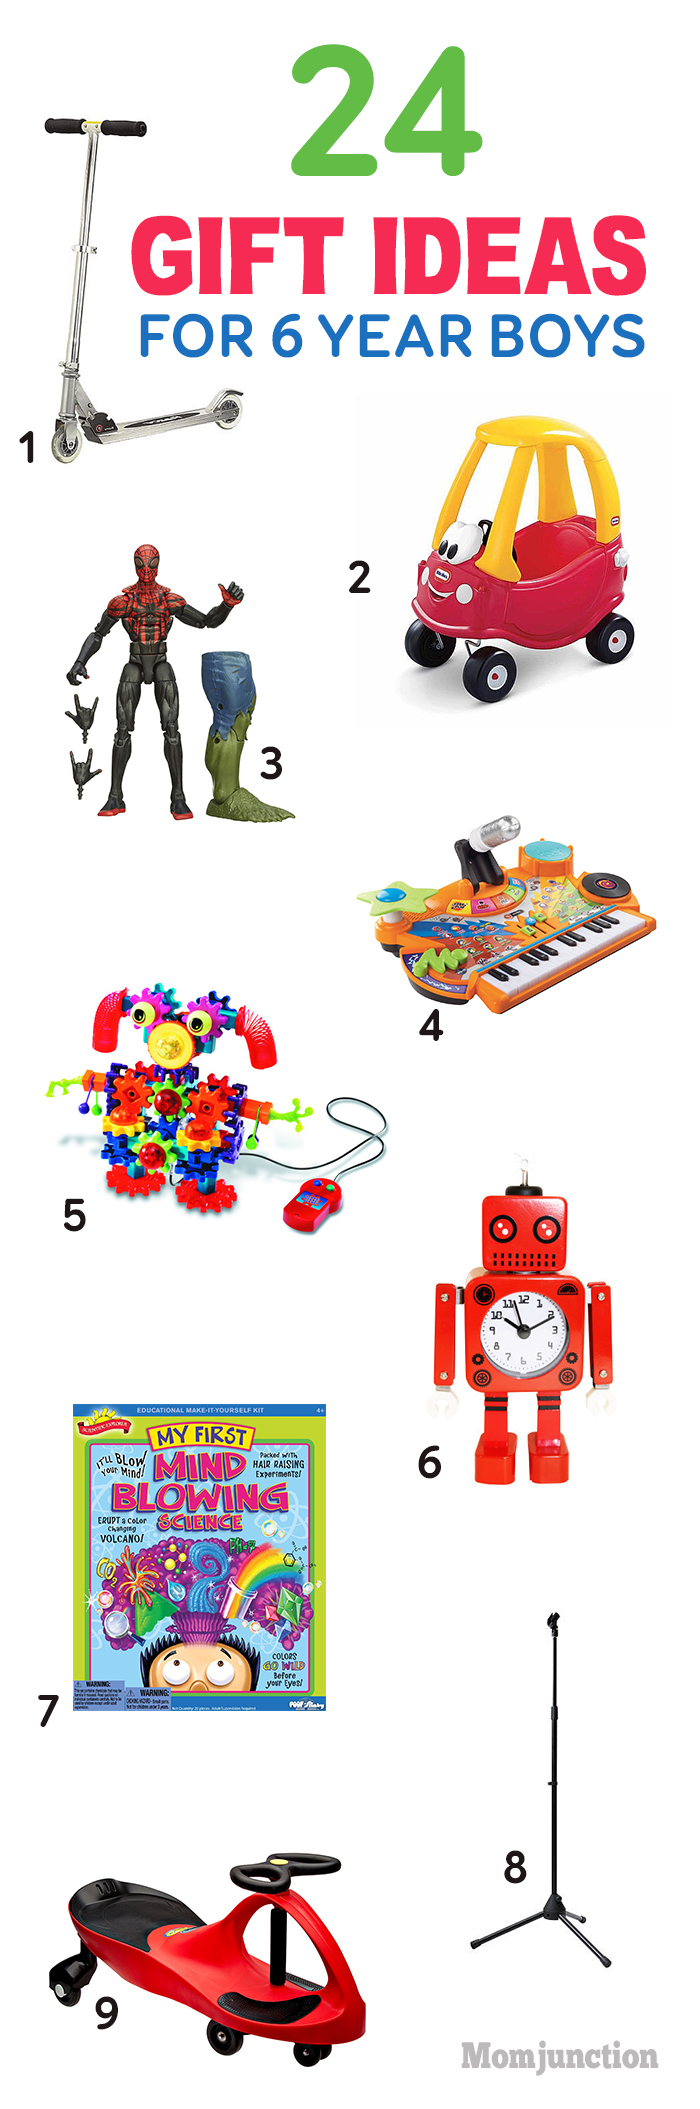 35 Best Gifts For 6 Year Old Boys In 2020